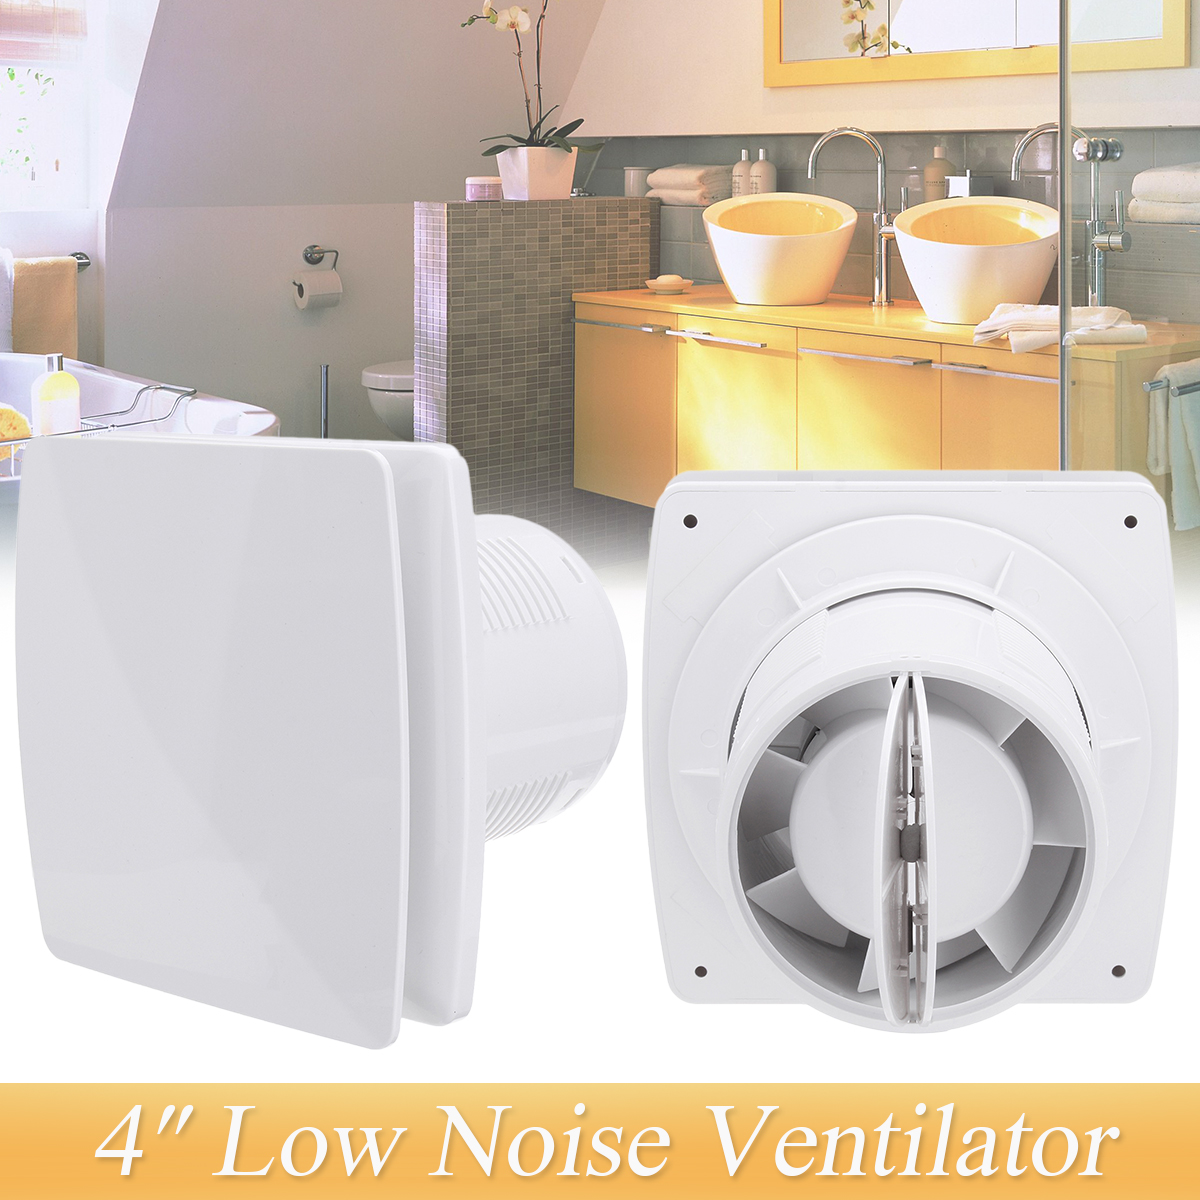 4 Inch 6 Inch Duct Fan 220V Ventilator Exhaust Fan Vent Blower Air Ventilation Home Bathroom Kitchen Toilet Wall Fan Low Noise